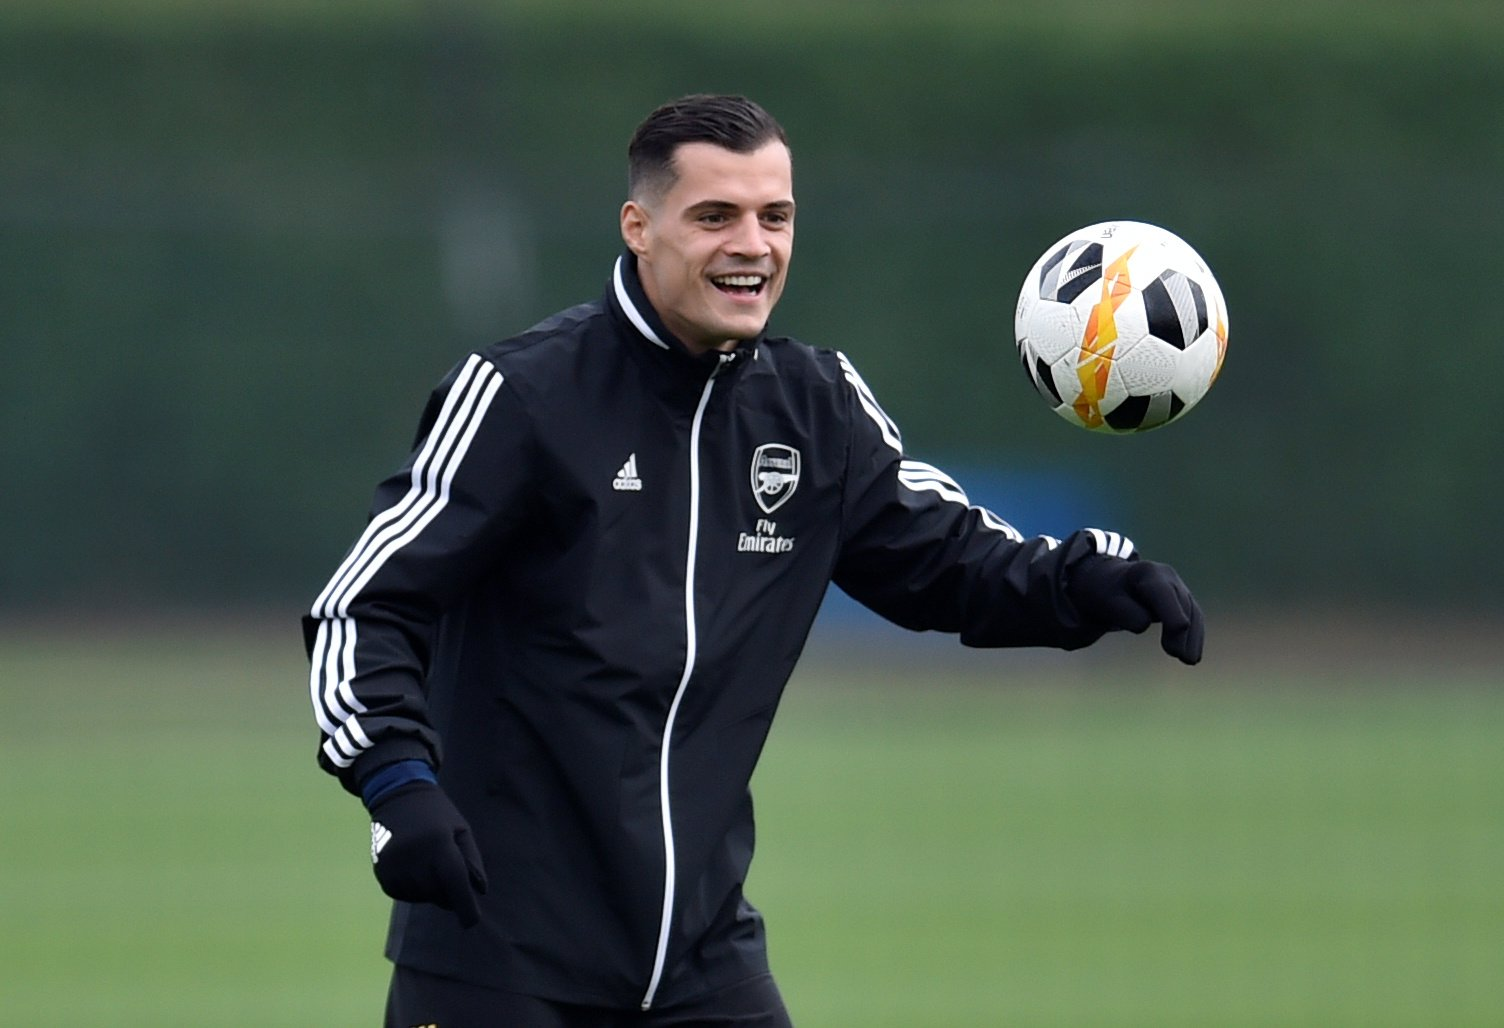 Newcastle United: Fans shut down repeated links to Arsenal star Granit Xhaka